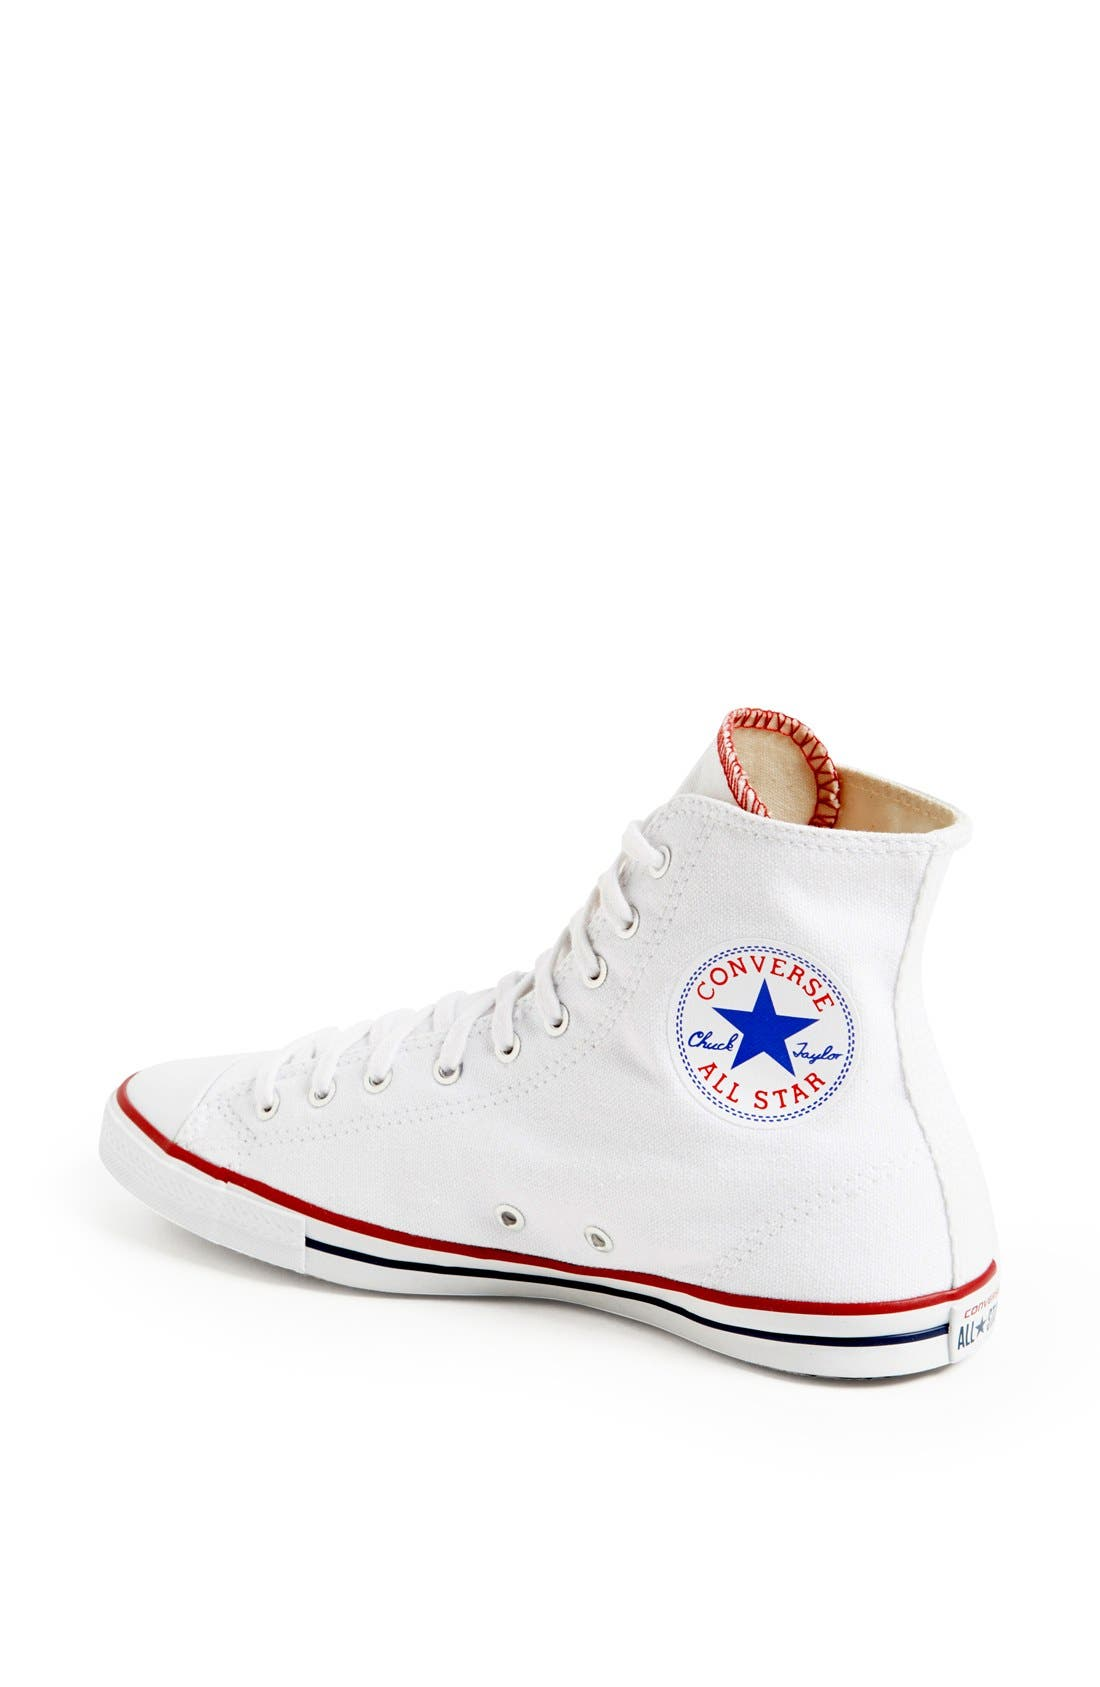 Alternate Image 3  - Converse Chuck Taylor® All Star® 'Fancy' High Top Sneaker